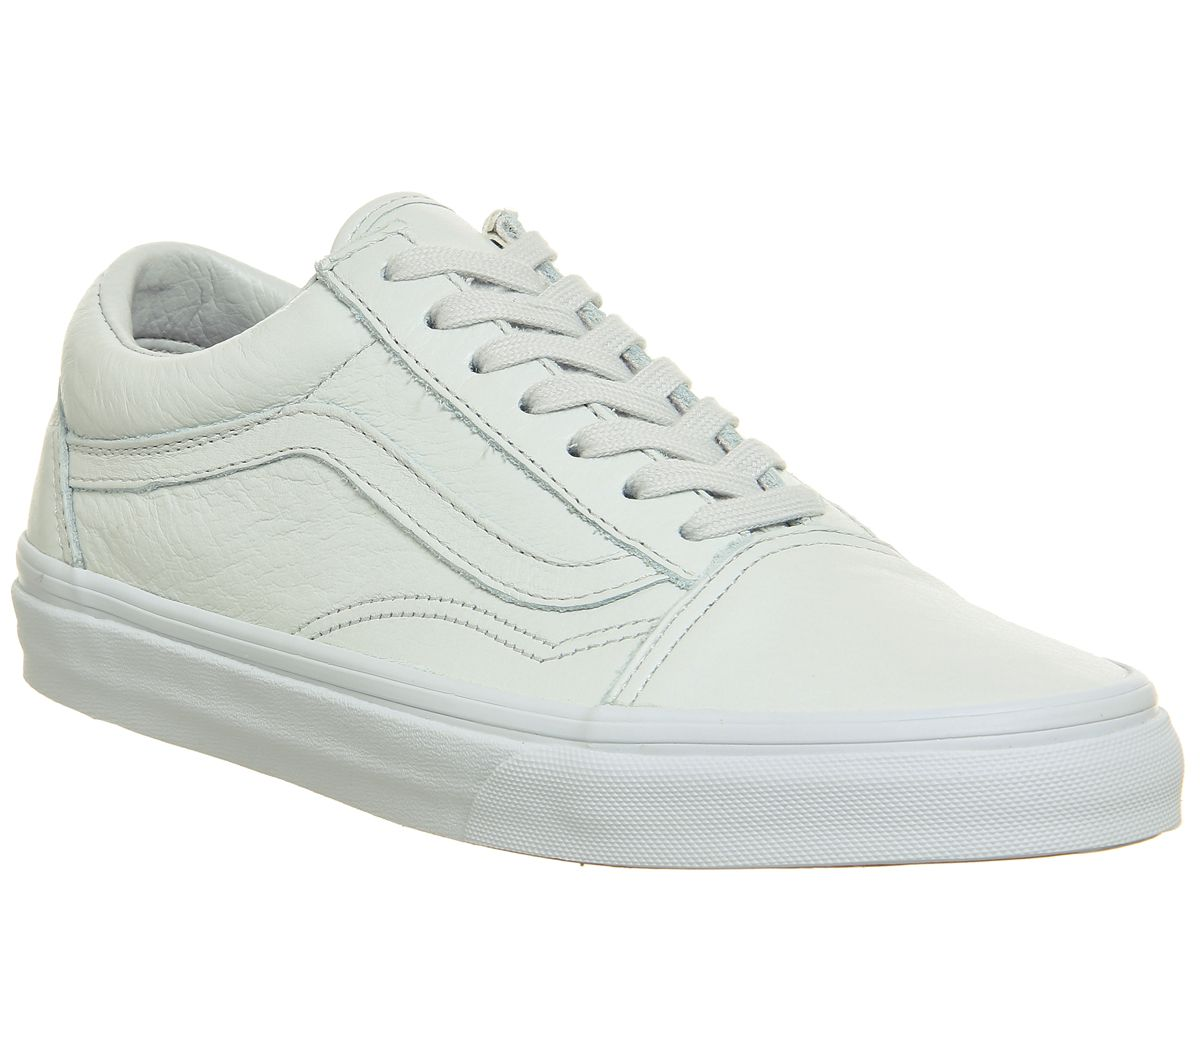 383f6c09d8148b Vans Old Skool Trainers Ice Flow Mono - Unisex Sports